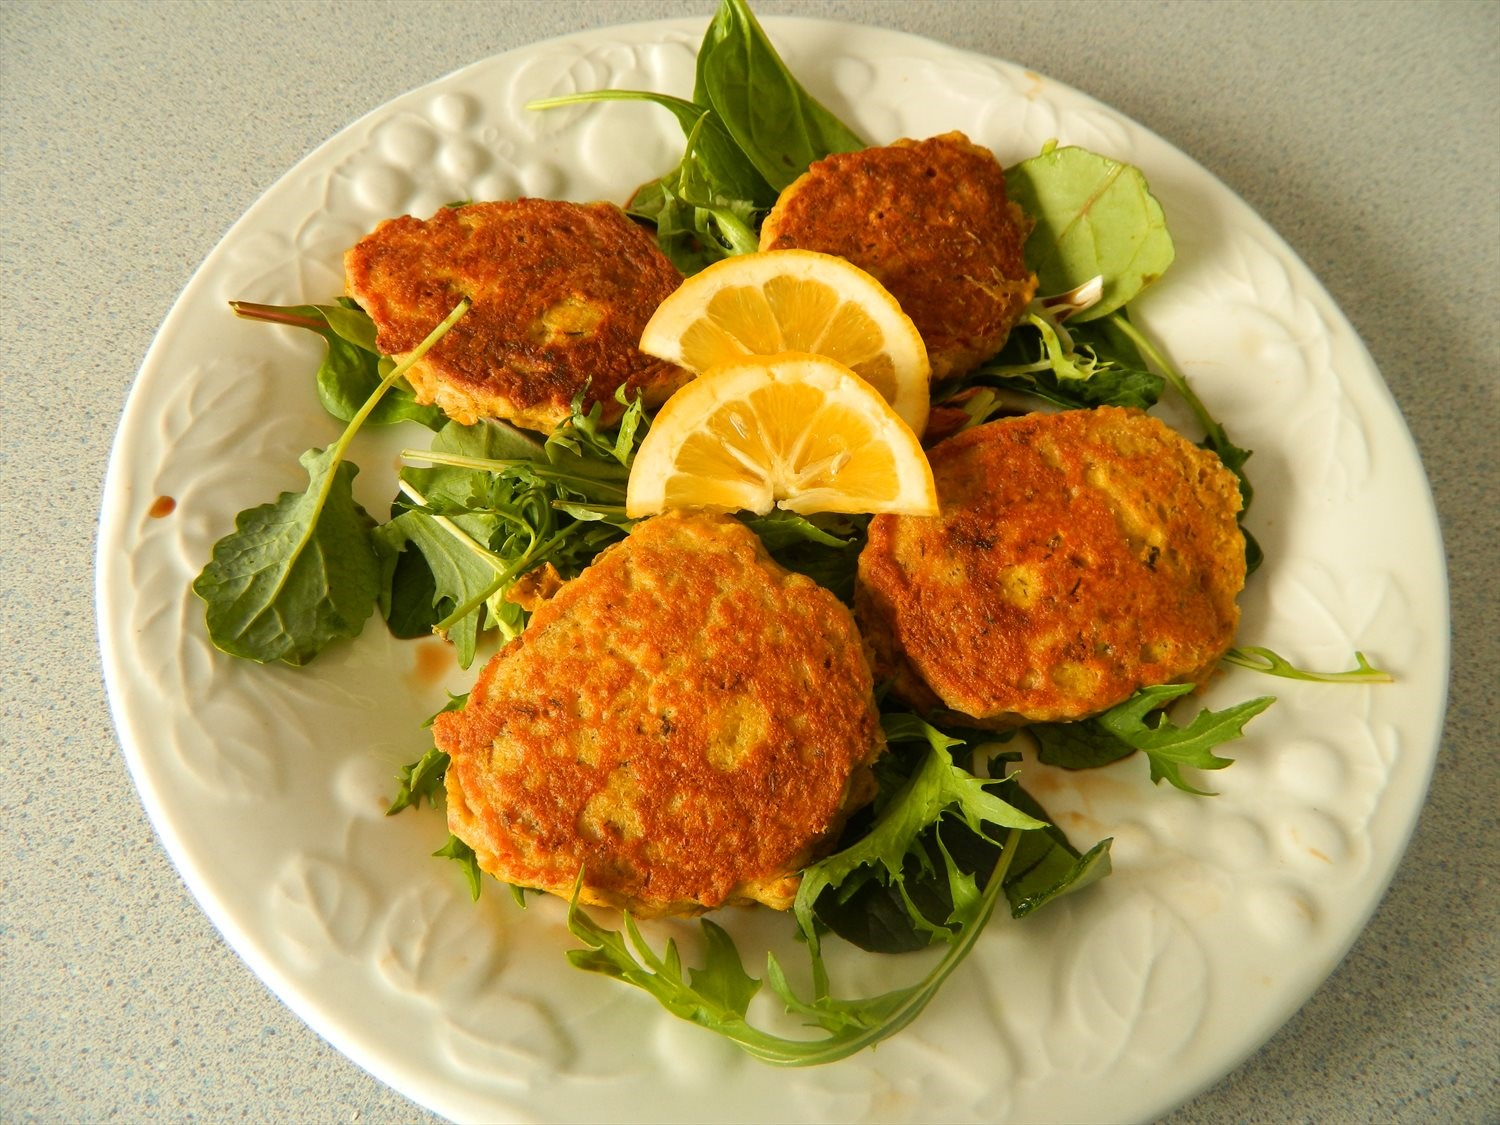 Salmon and Chickpea Patties